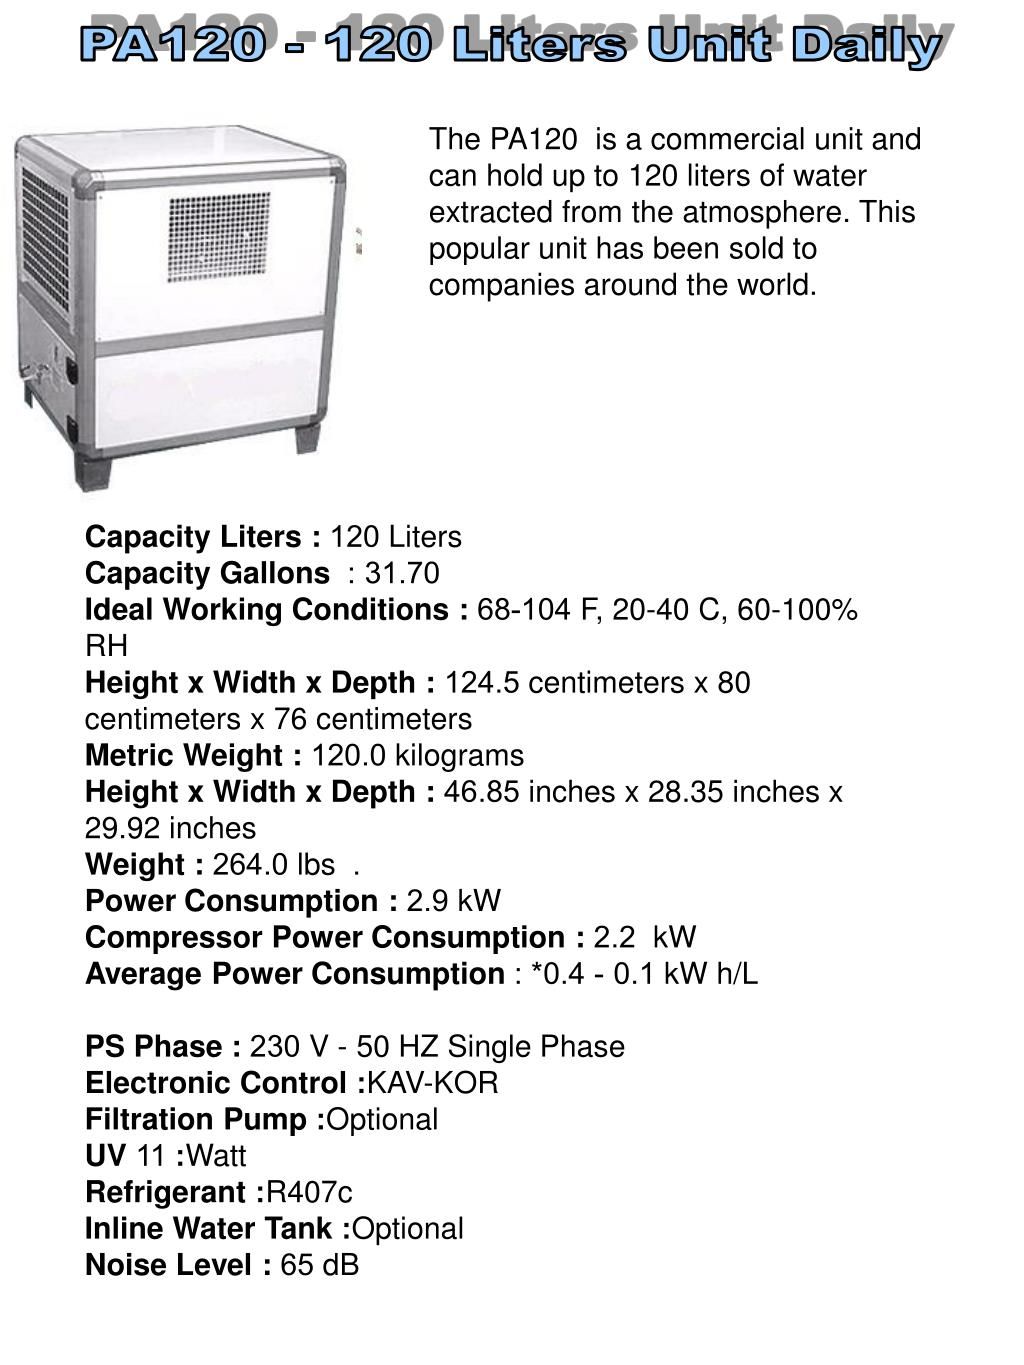 PA120 - 120 Liters Unit Daily